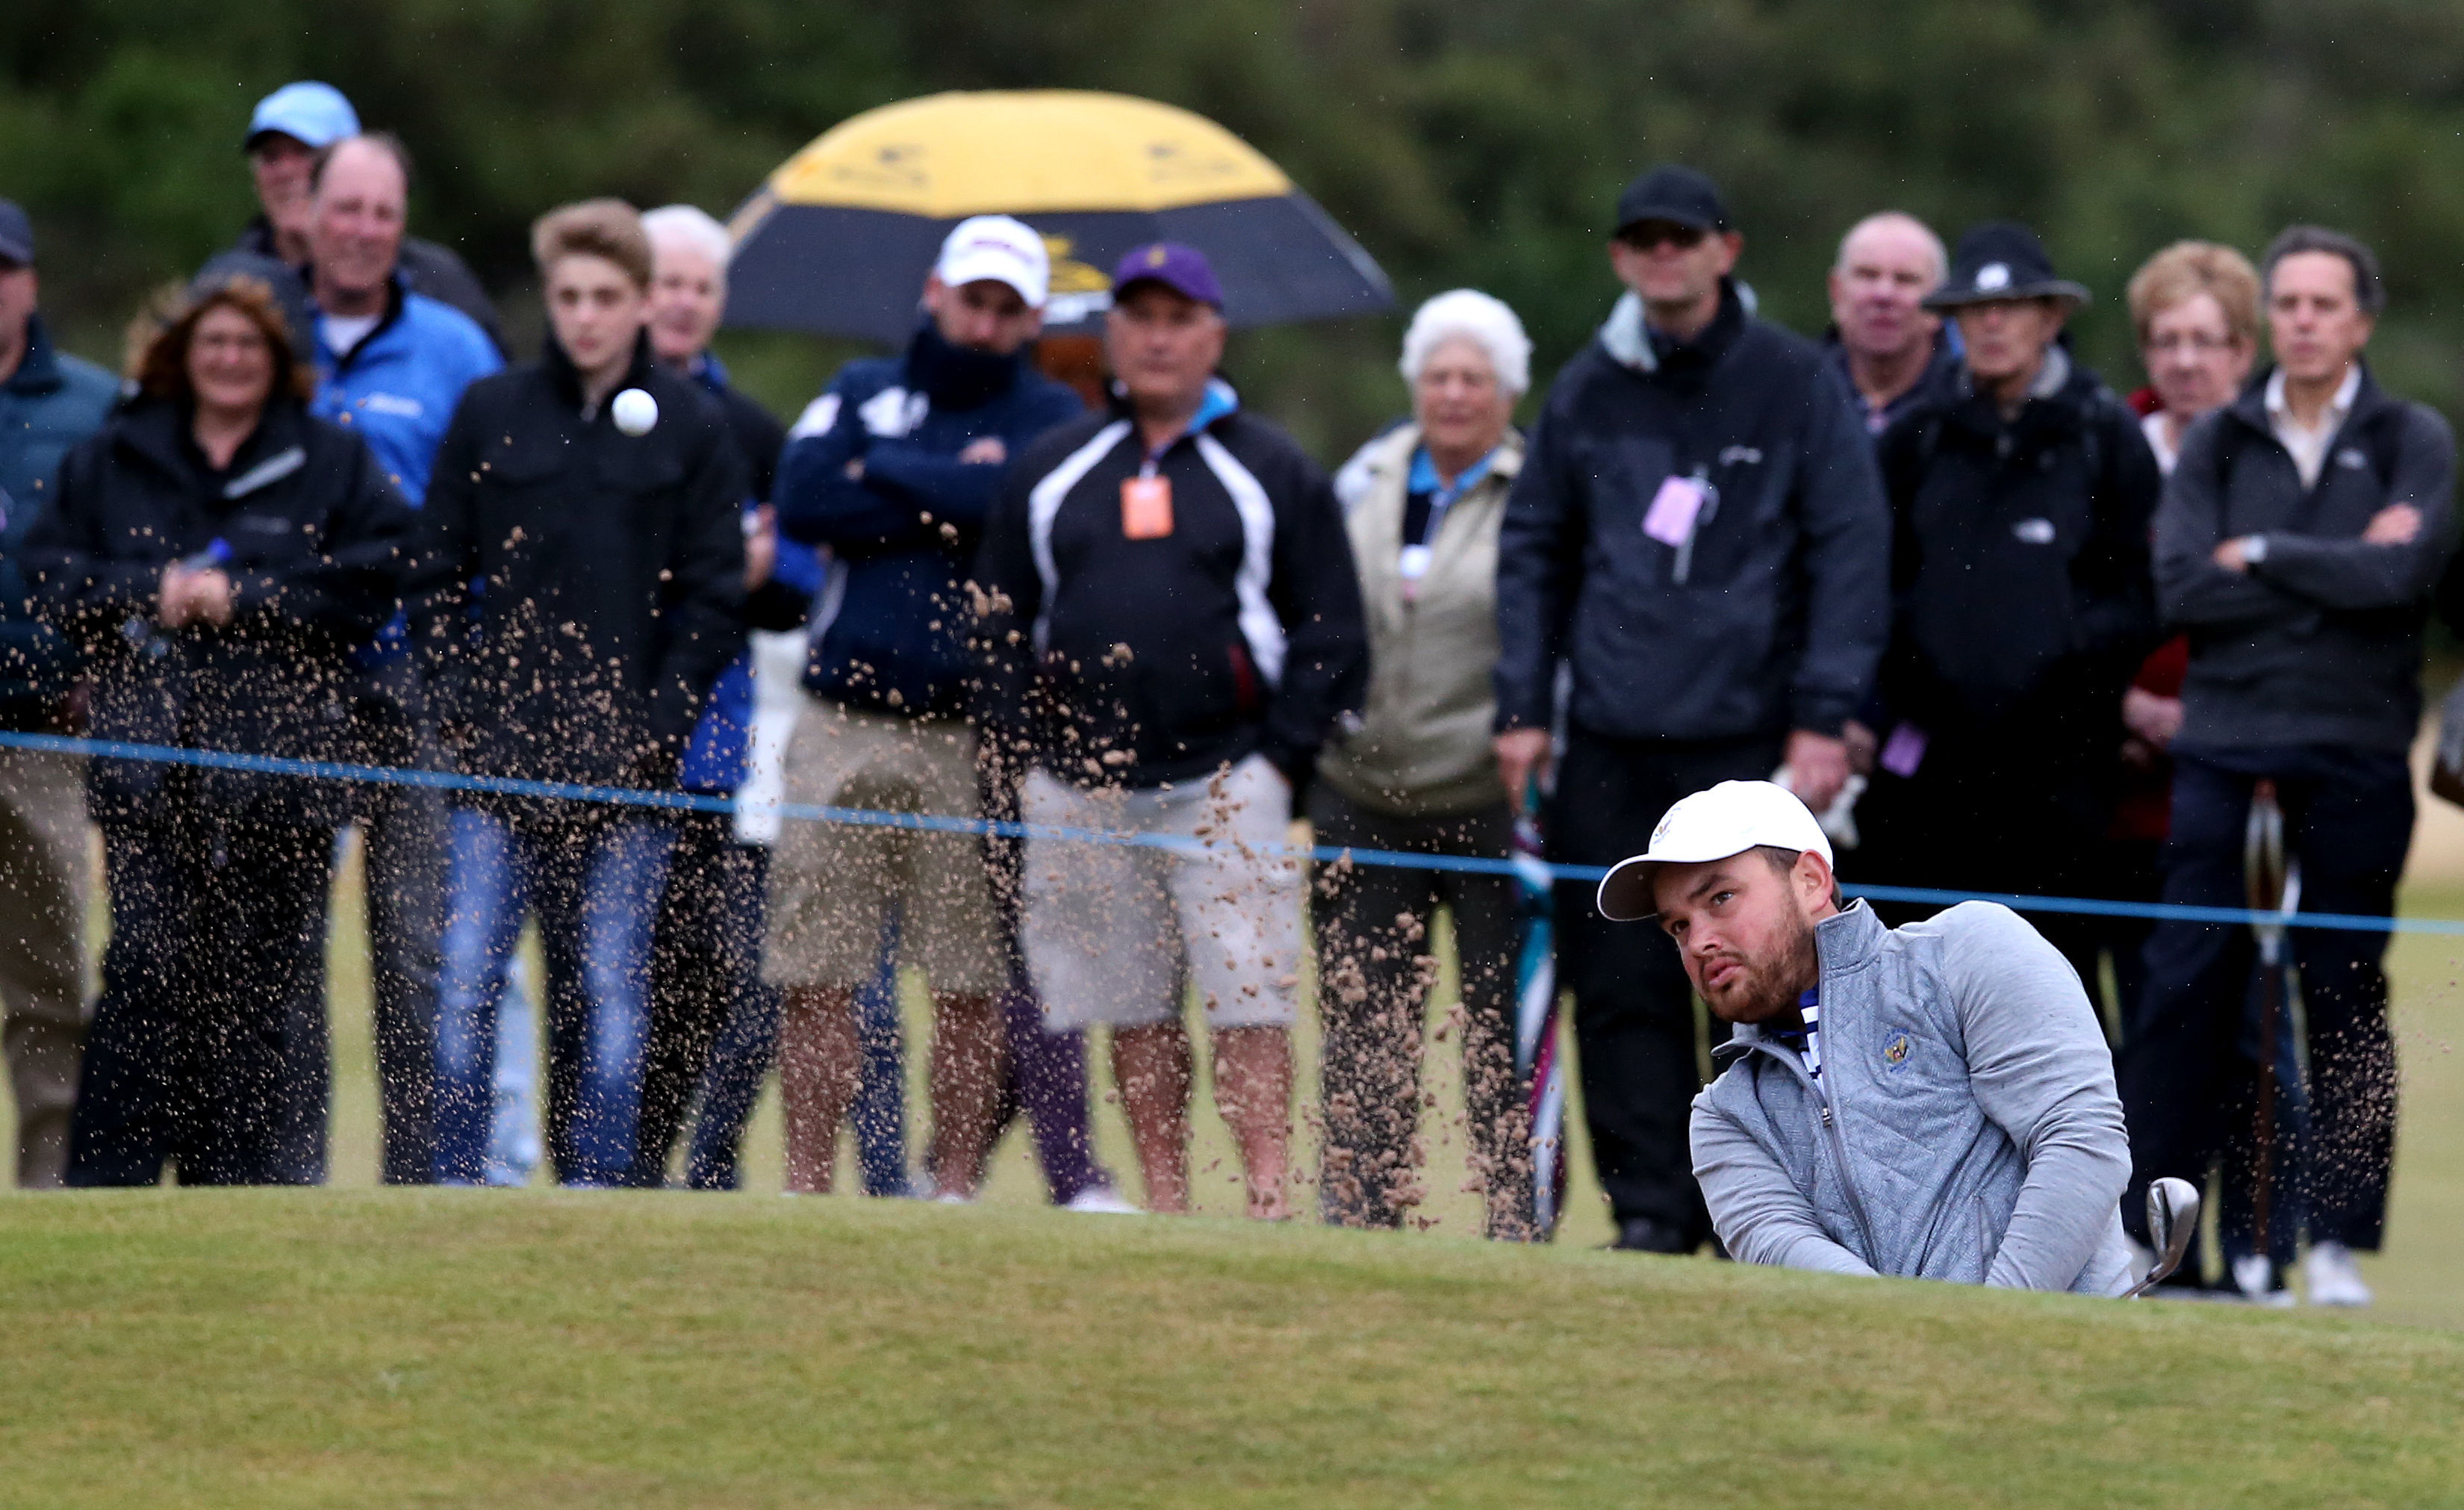 Hunter Stewart of the US plays out of the bunker on the 11th hole during Day 1 of the Walker Cup at Royal Lytham & St Annes Golf Club, Lytham St Annes, England, on Sept. 12, 2015.